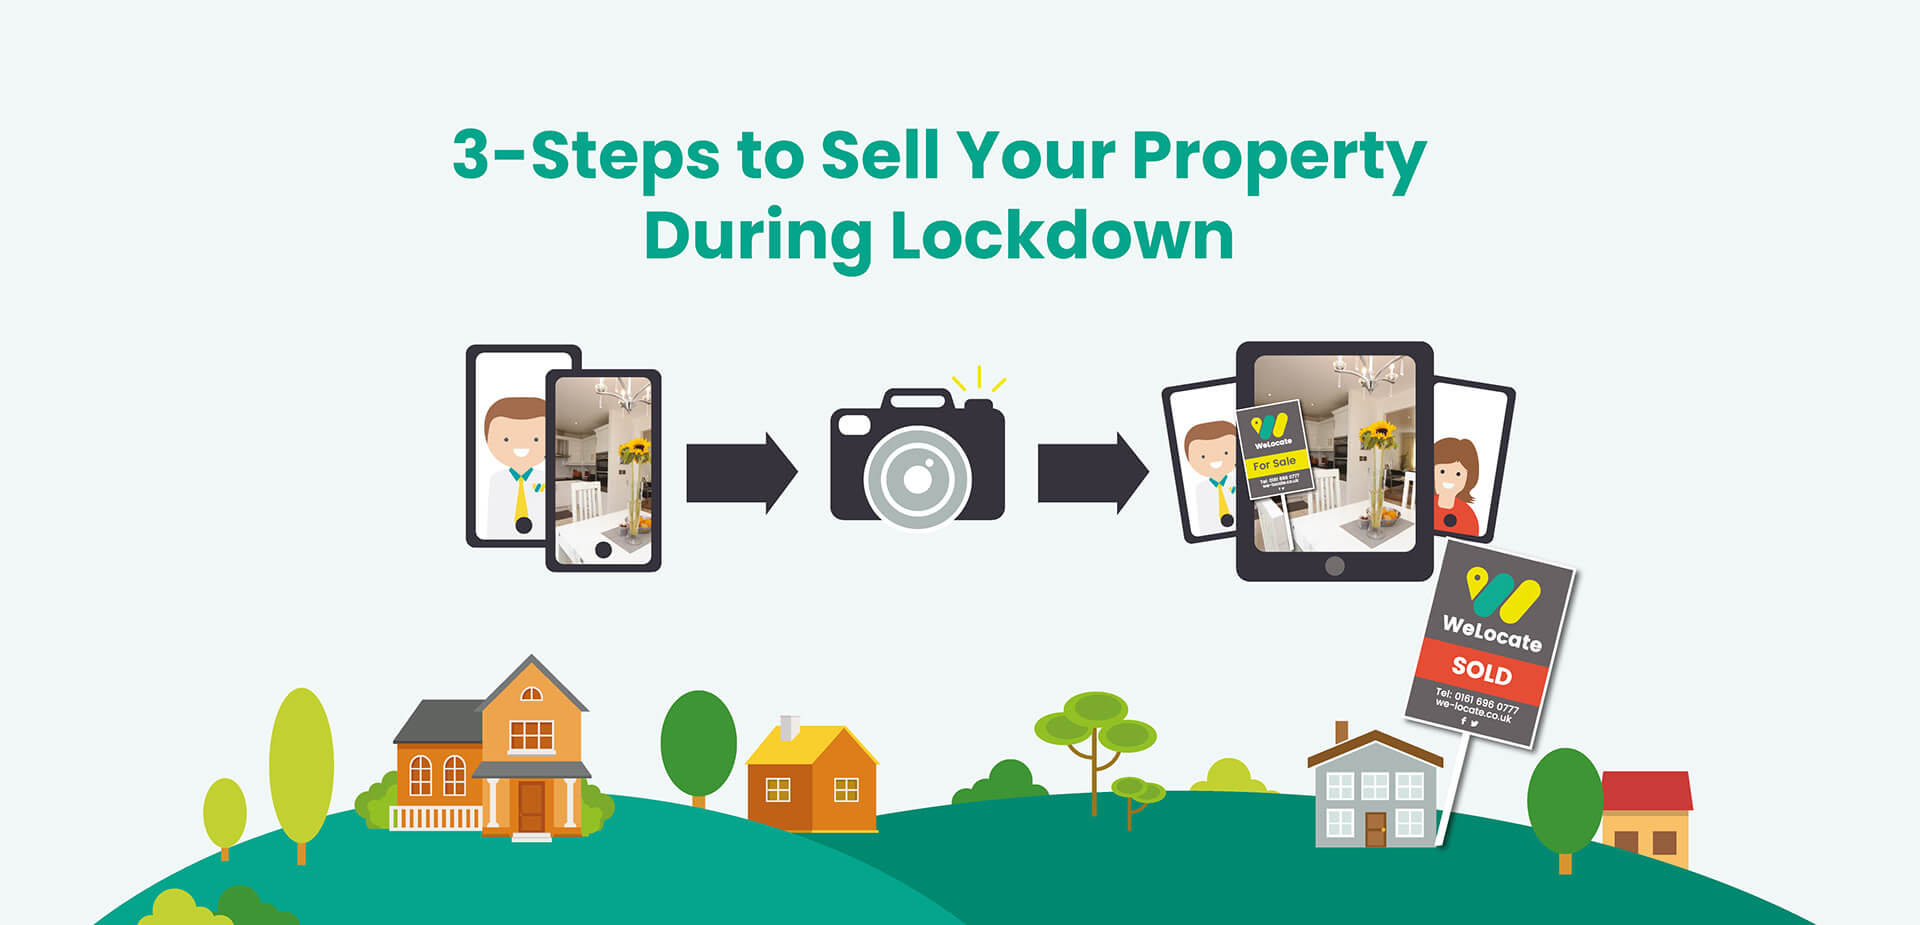 3 Steps To Sell Your Property During Lockdown